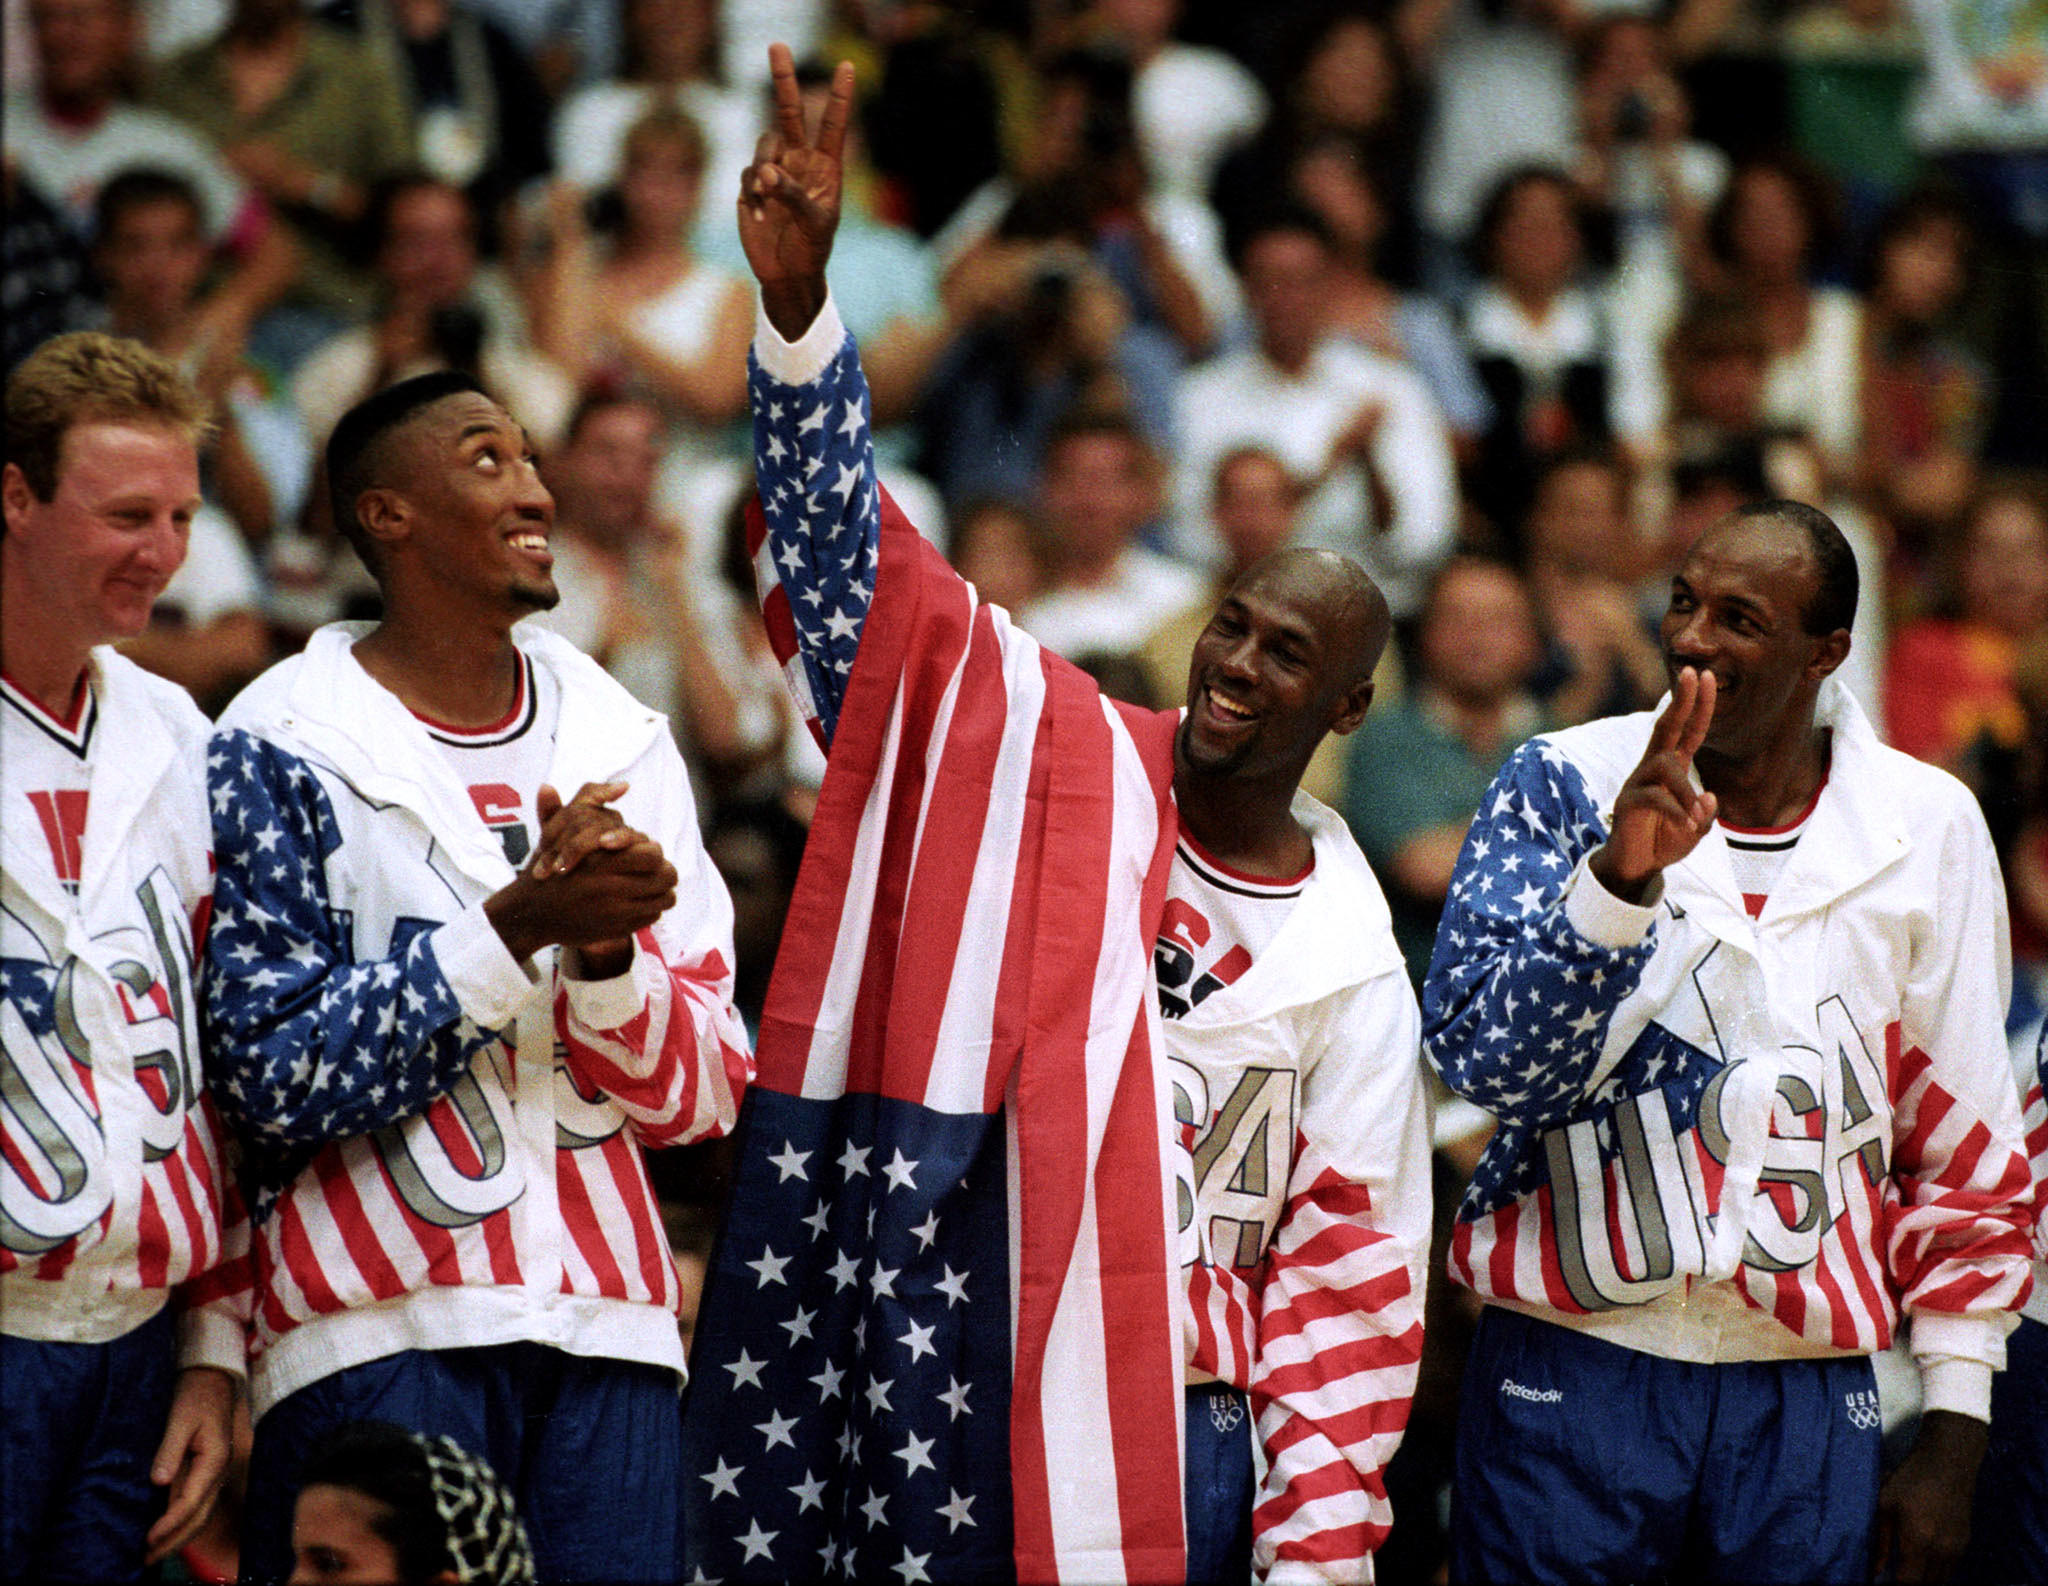 Members of the U.S. basketball team Larry Bird (from left), Scottie Pippen, Michael Jordan and Clyde Drexler celebrate after winning the gold medal during the 1992 Summer Olympic Games in Barcelona.